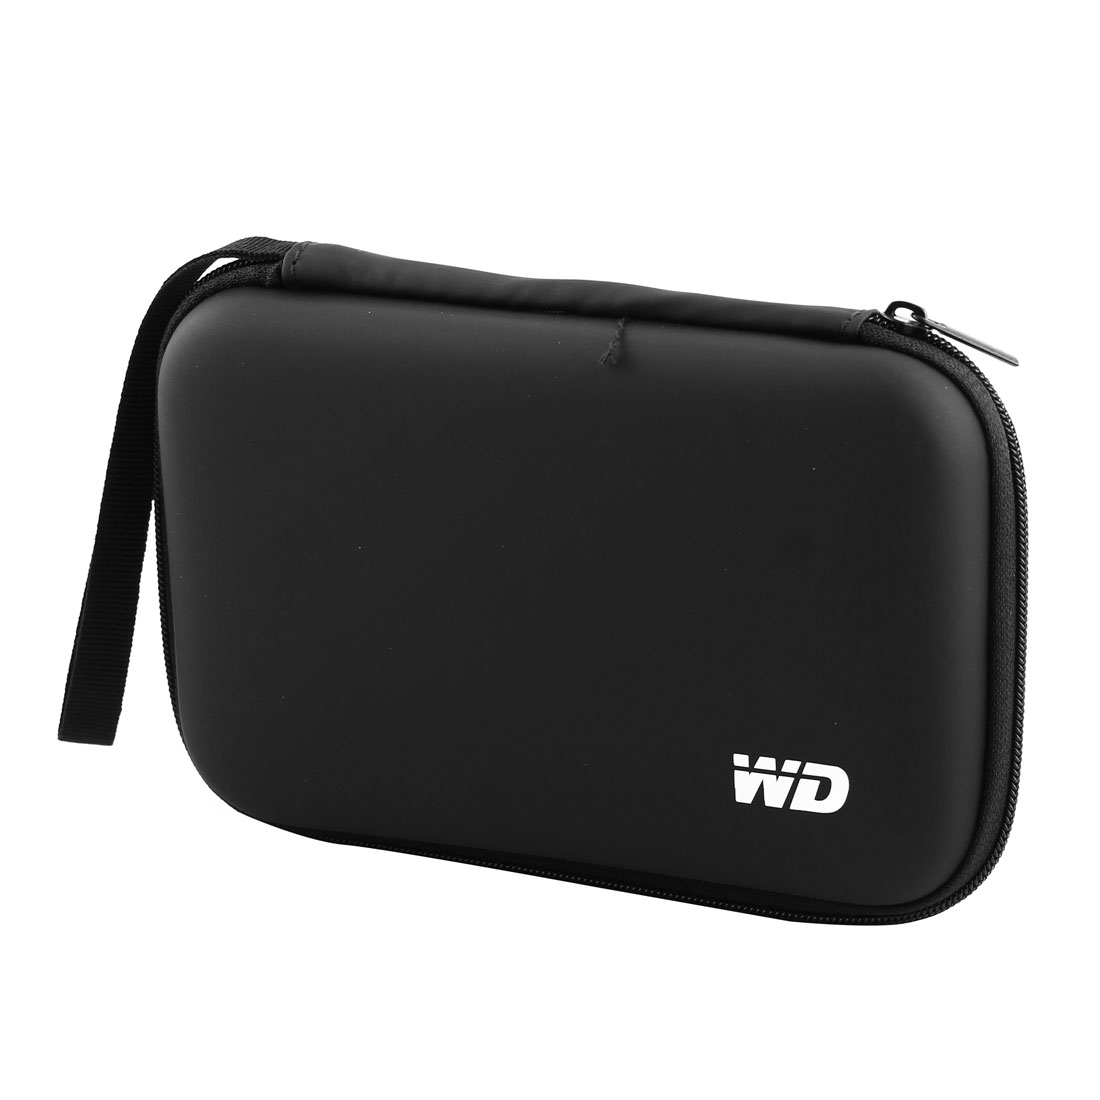 2-5-Portable-Black-Hard-Drive-Disk-HDD-Shockproof-Zipper-Bag-Pouch-Case